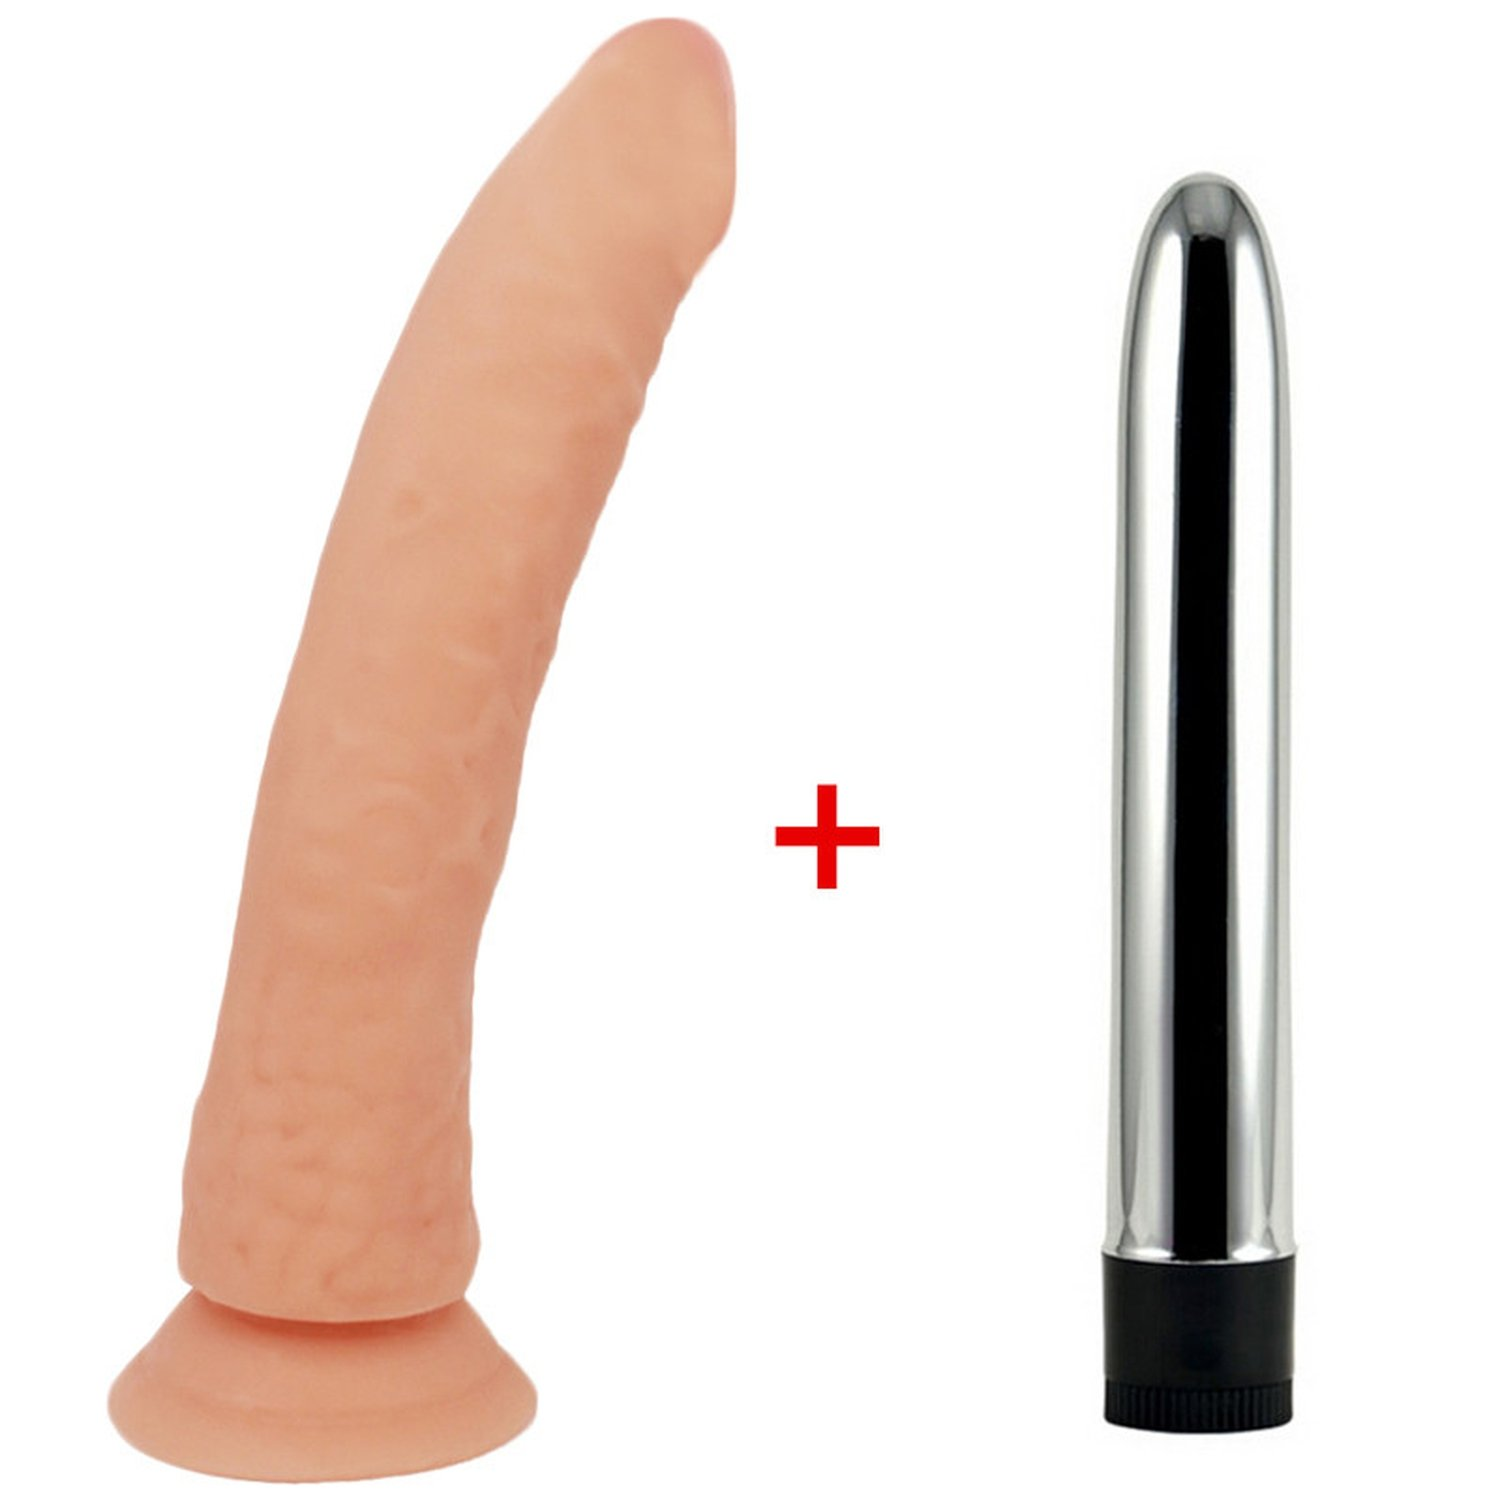 What size is considered a big cock